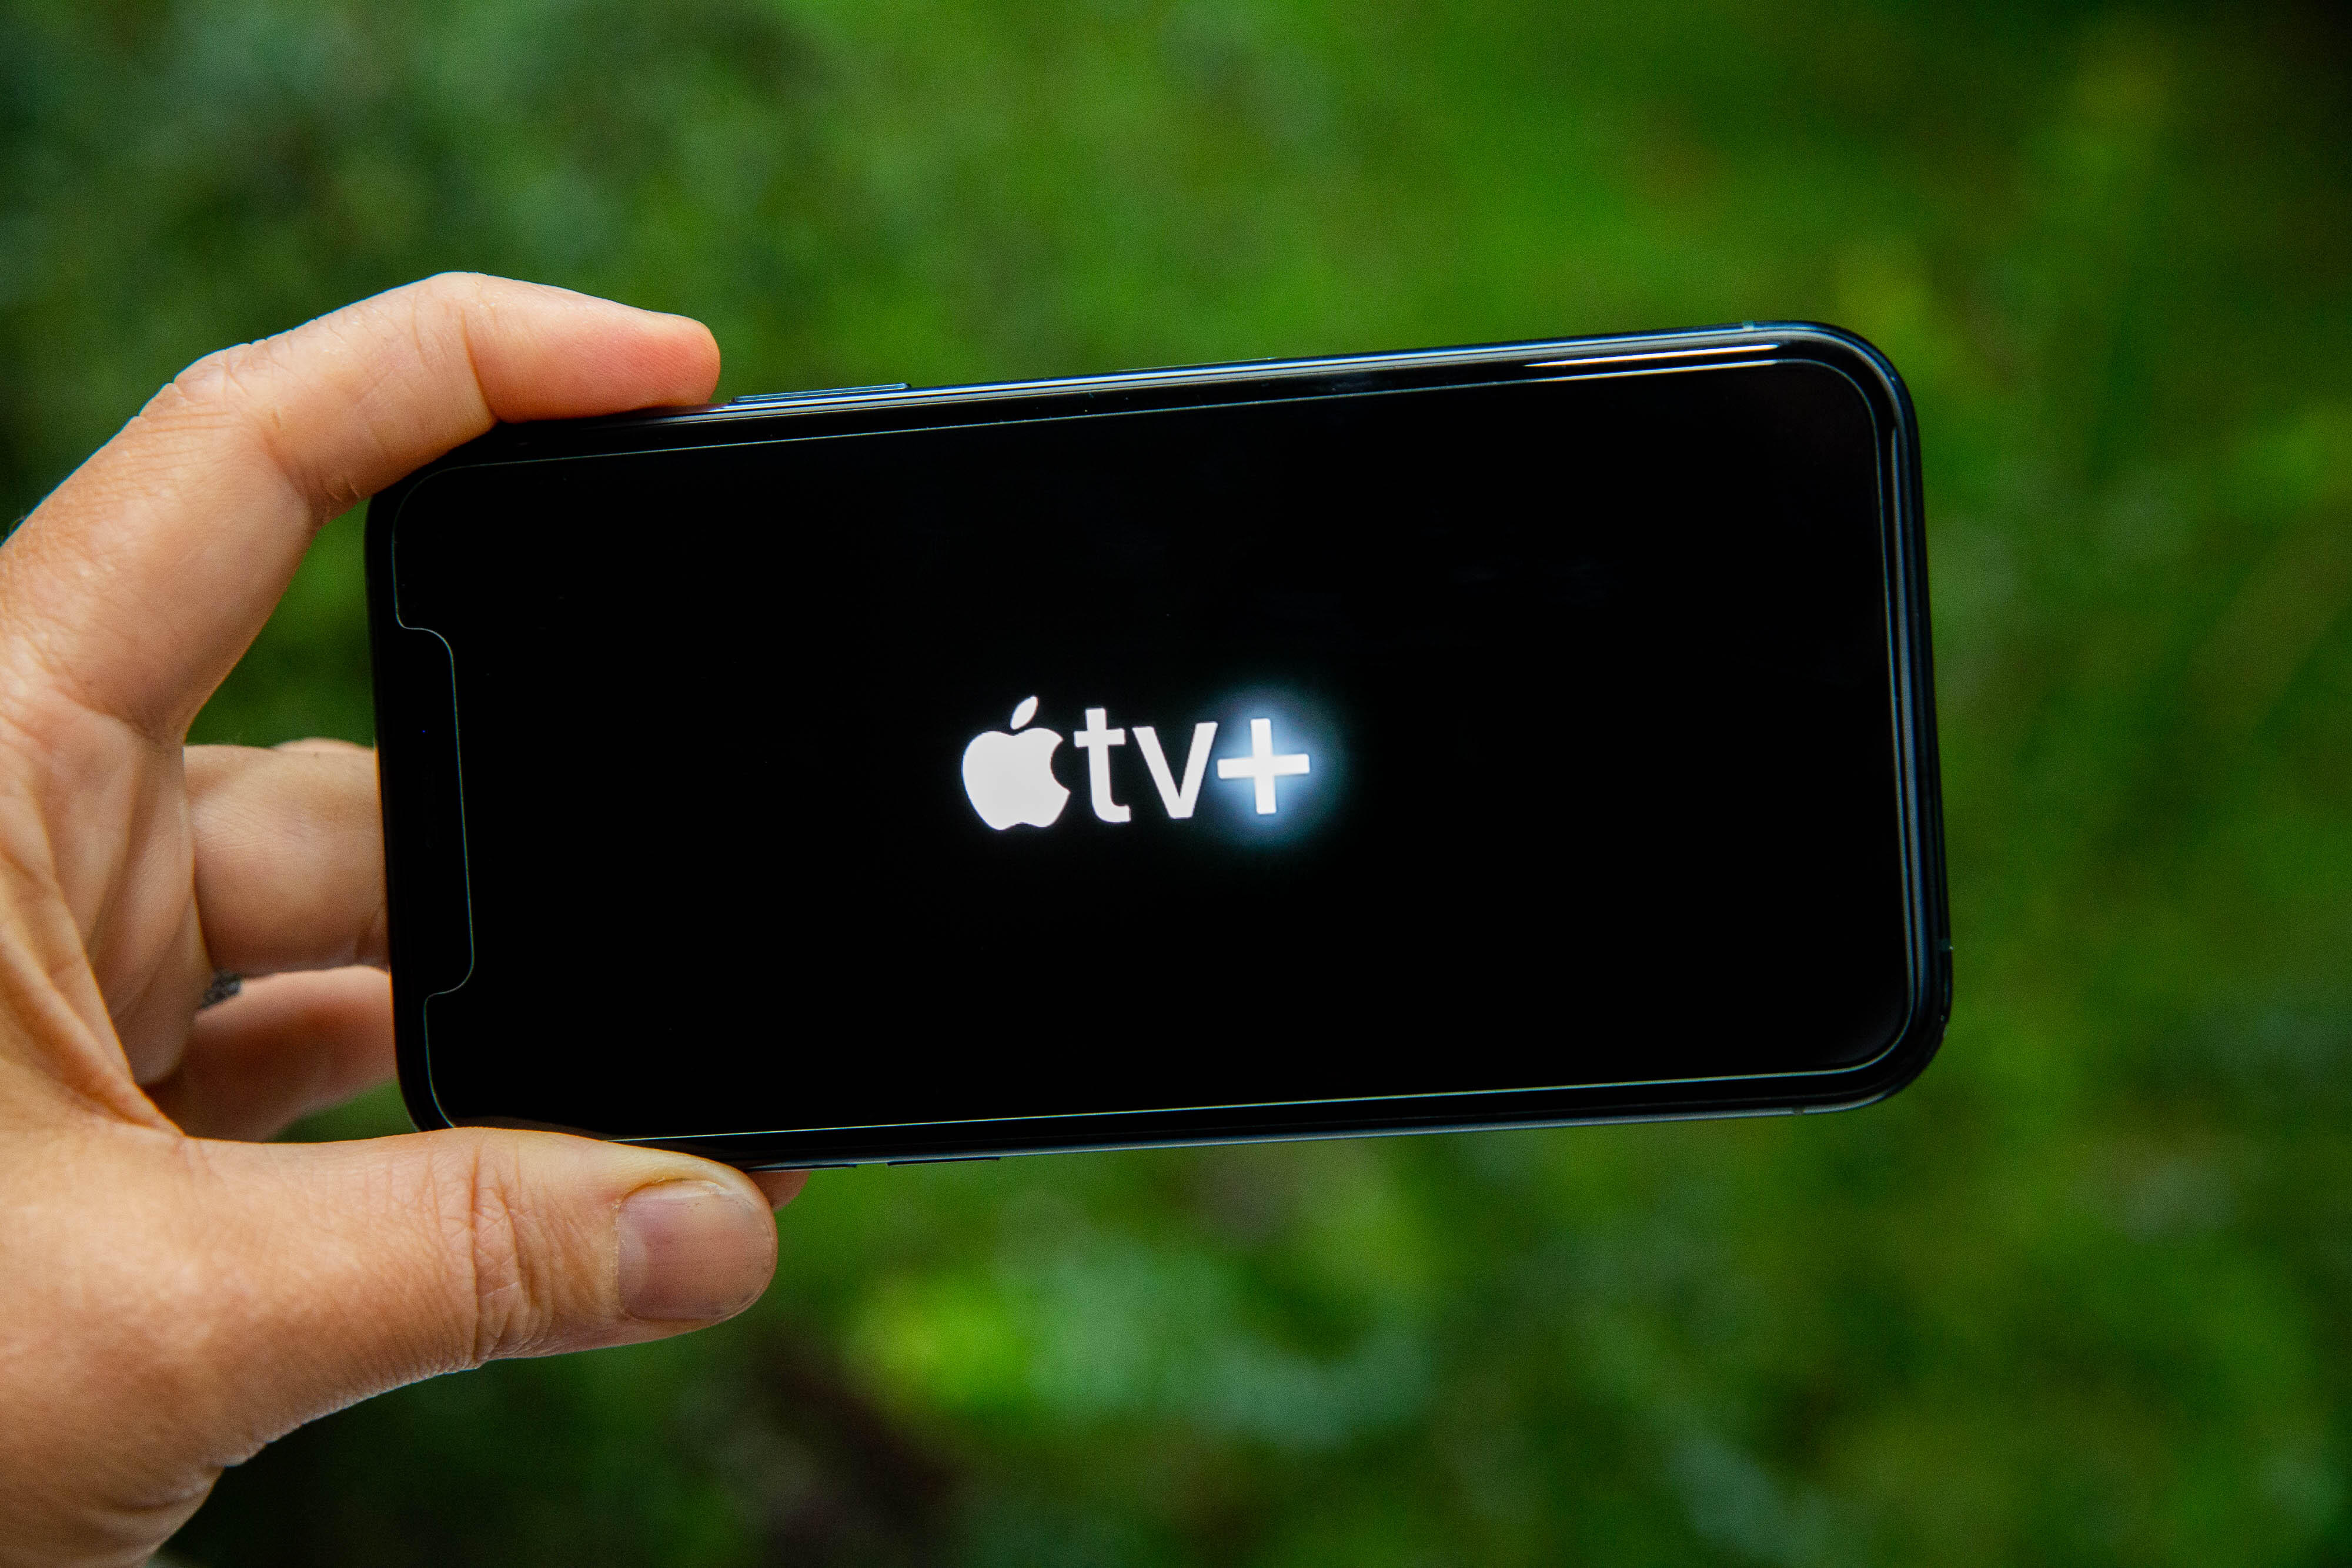 A hand holds a phone with the white Apple TV Plus logo on a black screen